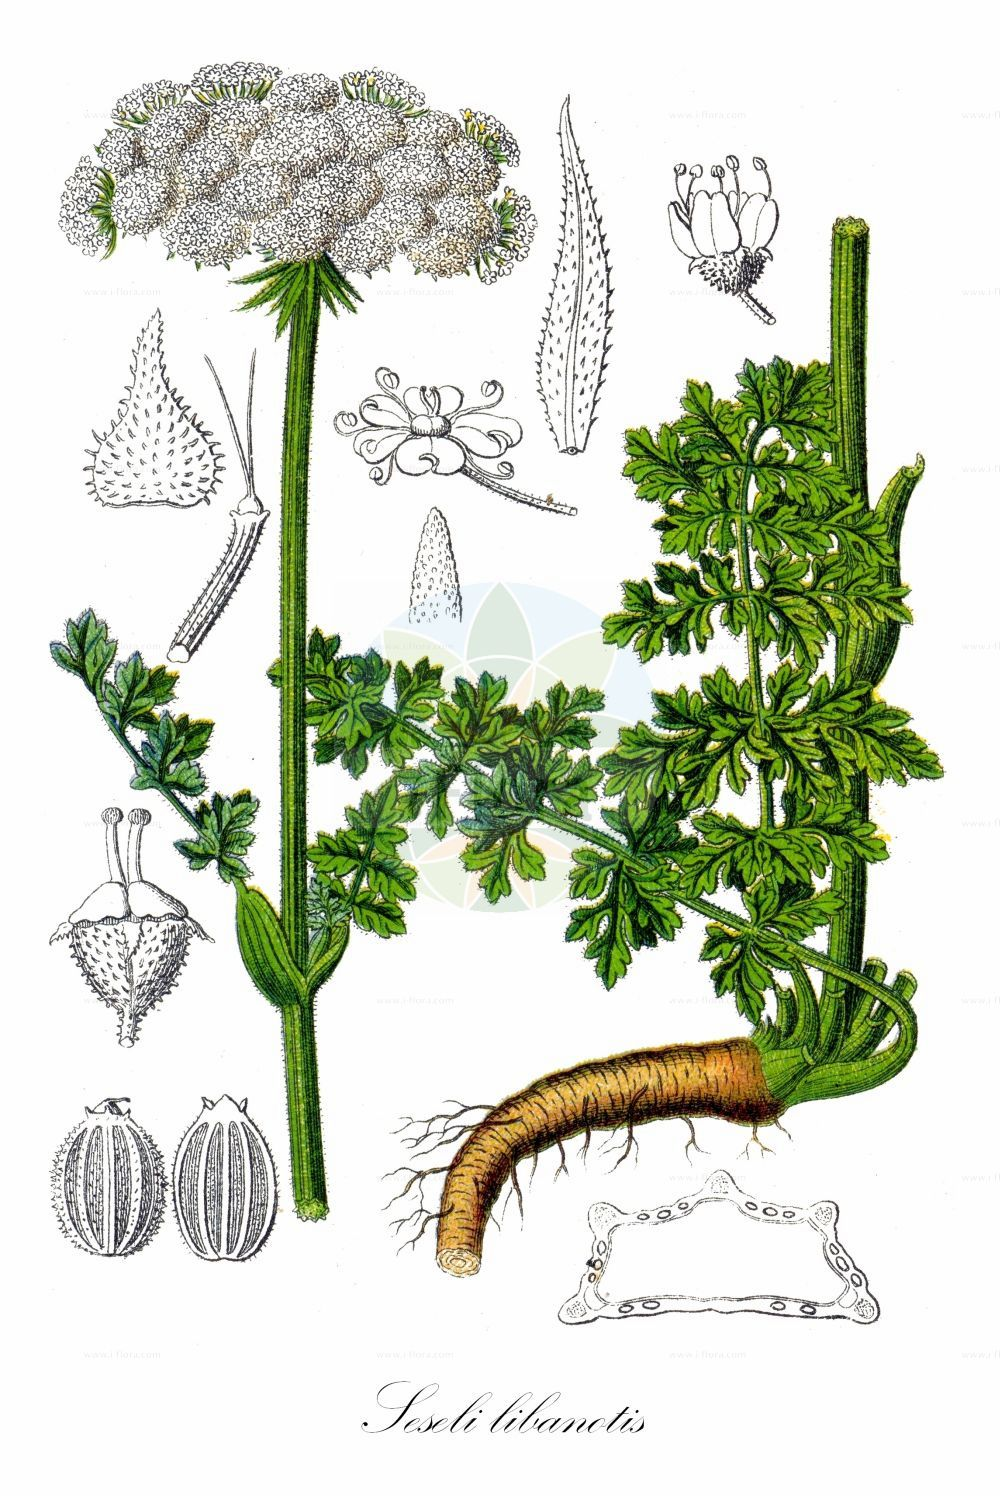 Historische Abbildung von Seseli libanotis (Heilwurz - Moon Carrot). ---- Historical Drawing of Seseli libanotis (Heilwurz - Moon Carrot). (Seseli libanotis,Heilwurz,Moon Carrot,Ammi daucifolium,Athamanta libanotis,Athamanta sibirica,Crithmum pyrenaicum,Libanotis daucifolia,Libanotis intermedia,Libanotis montana,Libanotis pyrenaica,Seseli sibiricum,Berg-Hirschheil-Bergfenchel,Seseli,Sesel,Cicely,Apiaceae,Doldengewaechse,Carrot family,Sturm (1796f))